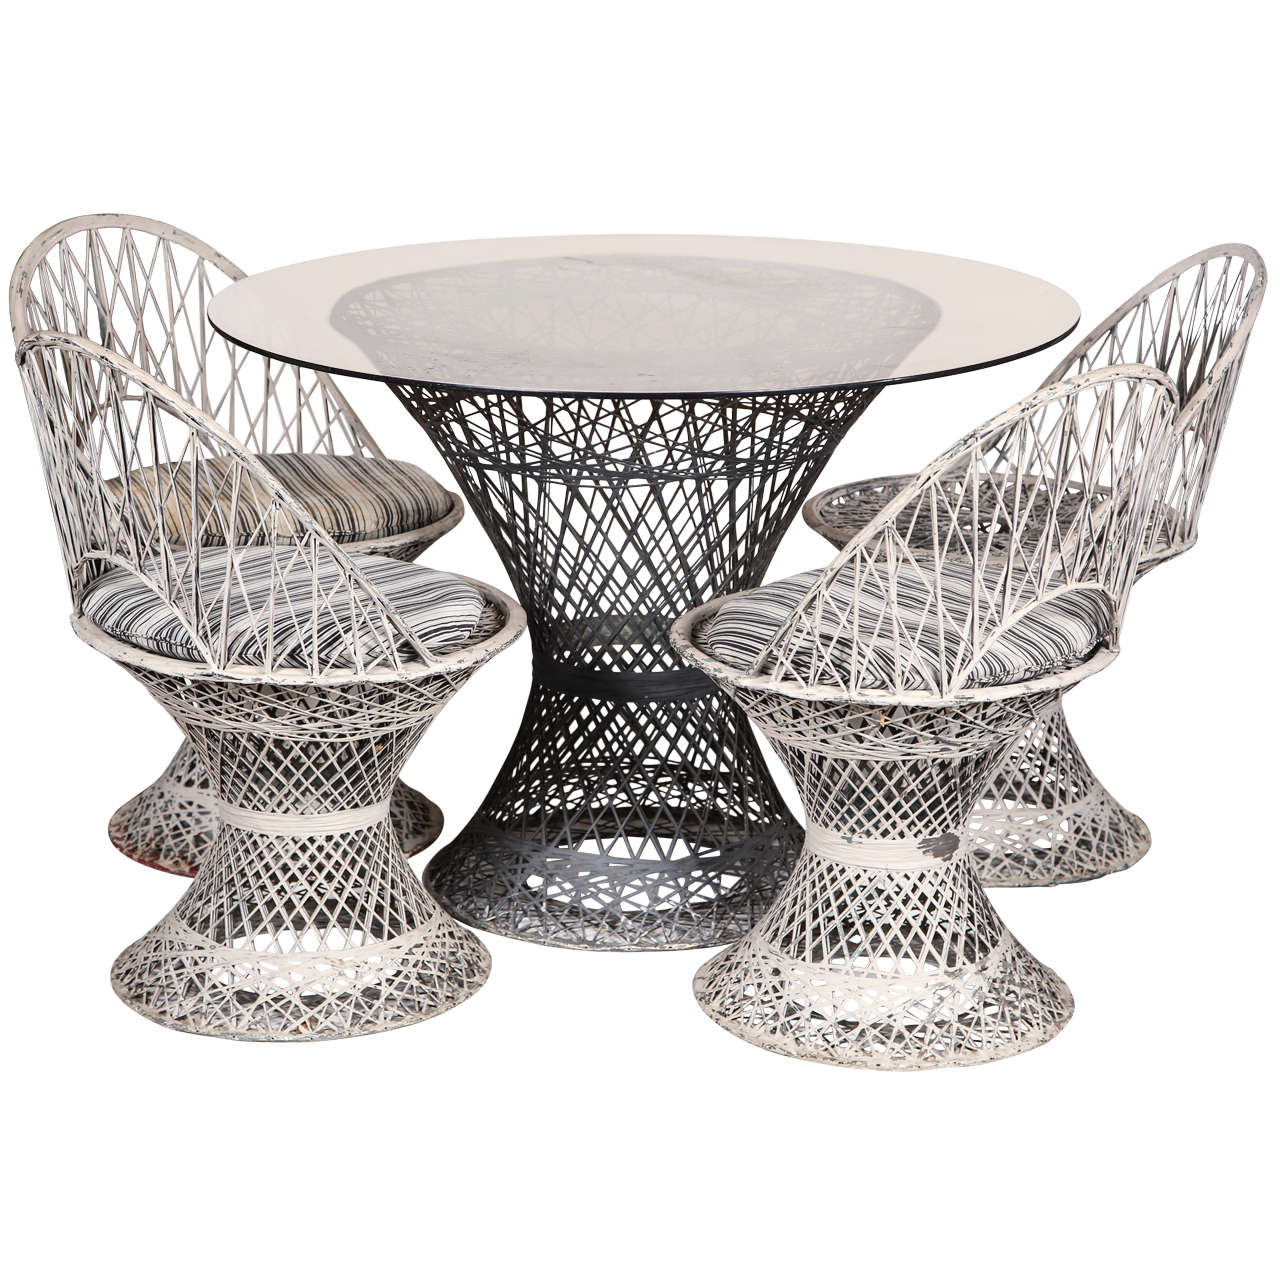 Metal Mesh Wicker Garden Set For Sale At 1stdibs